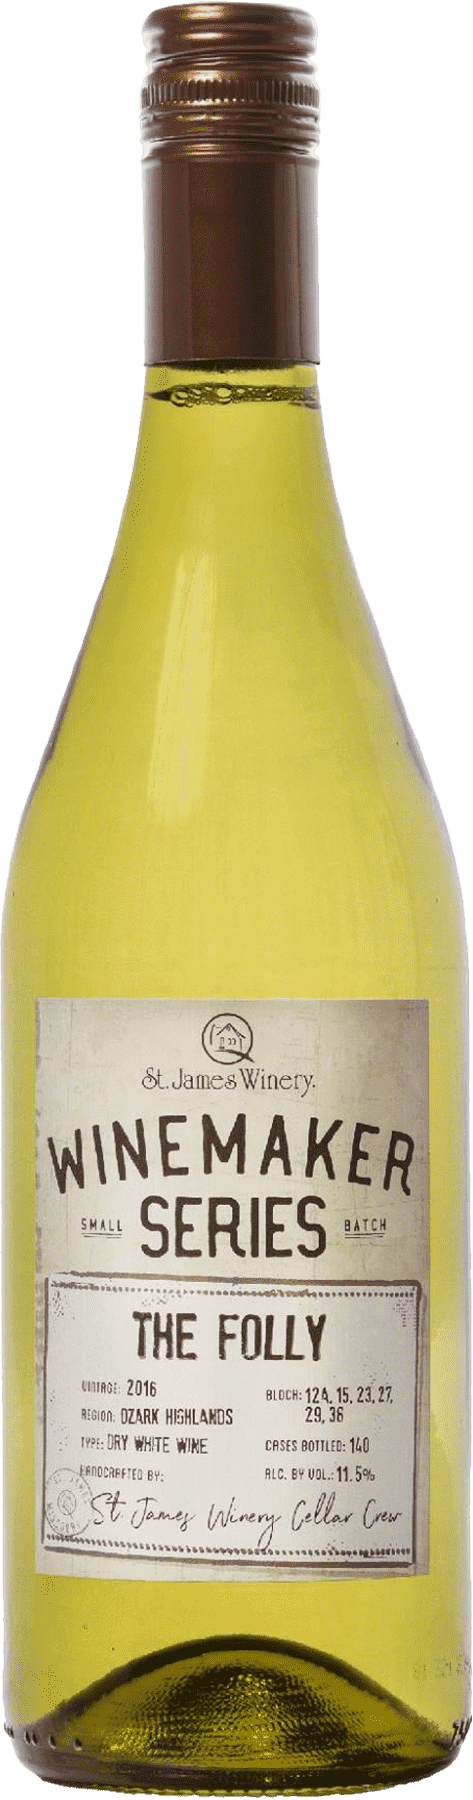 The Folly Winemaker Series Dry White Wine - St. James Winery Missouri